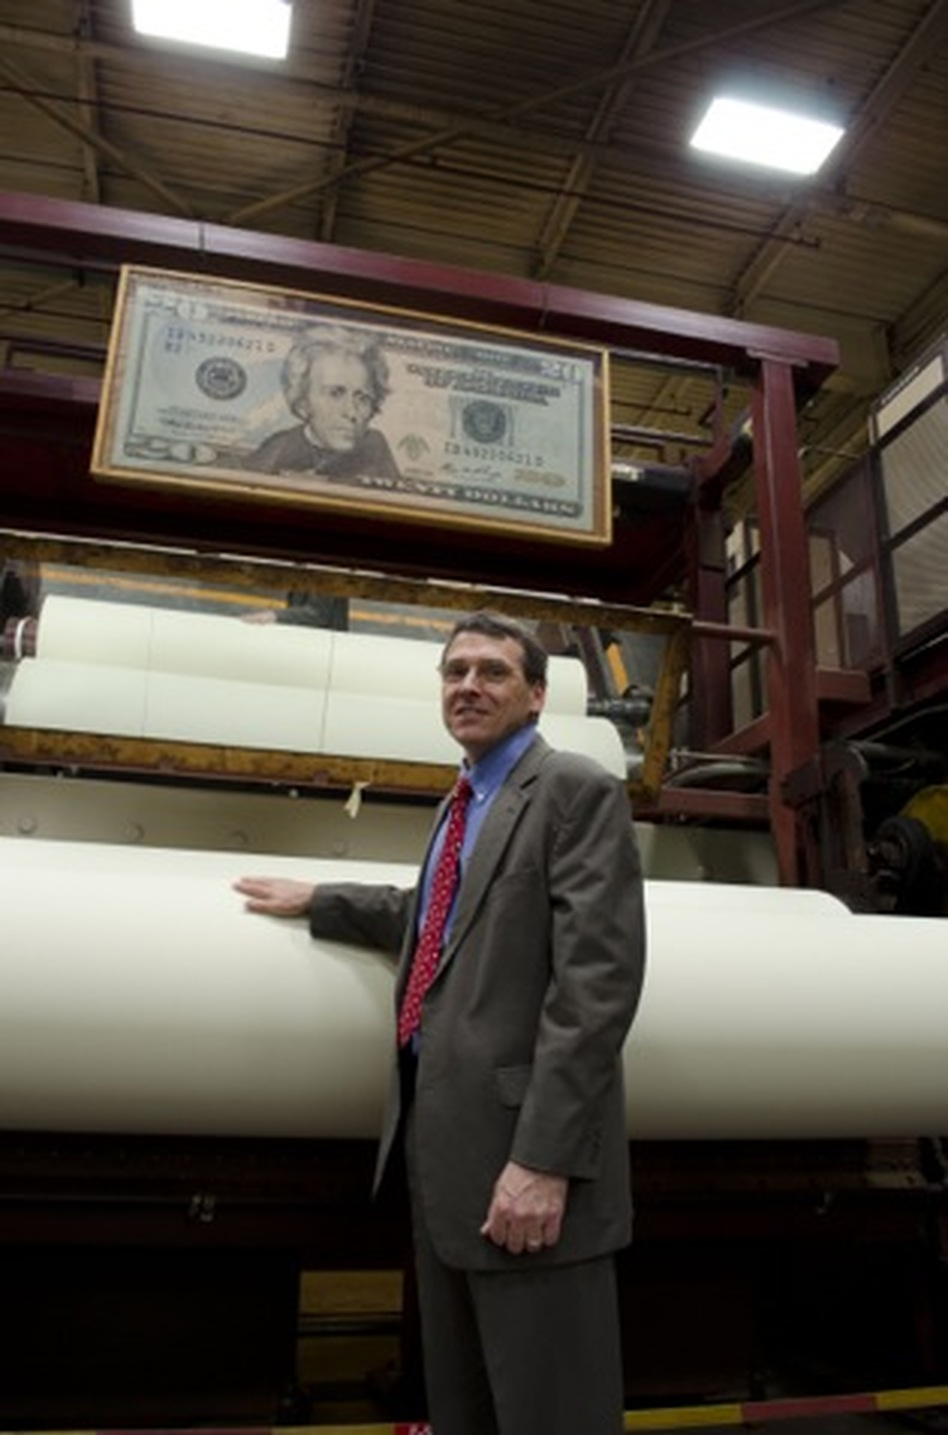 Crane & Co. Vice President Doug Crane stands near a spool of paper used for $20 bills, as it spins at the company's Wahconah Mill. (NPR)